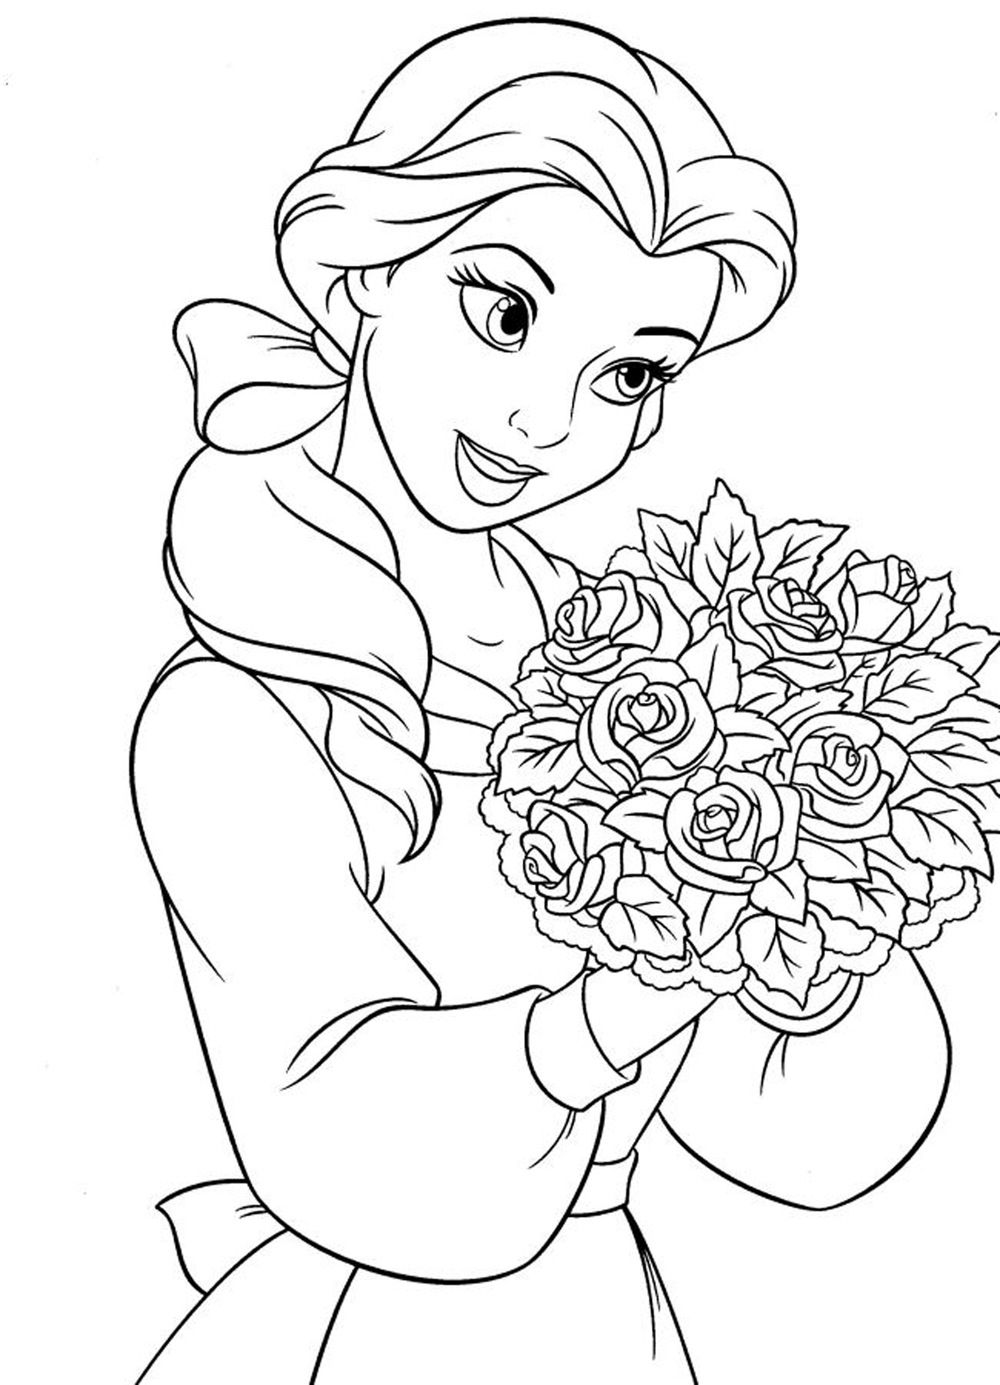 Free coloring pages disney princesses - Princess Coloring Pages For Girls Free Large Images